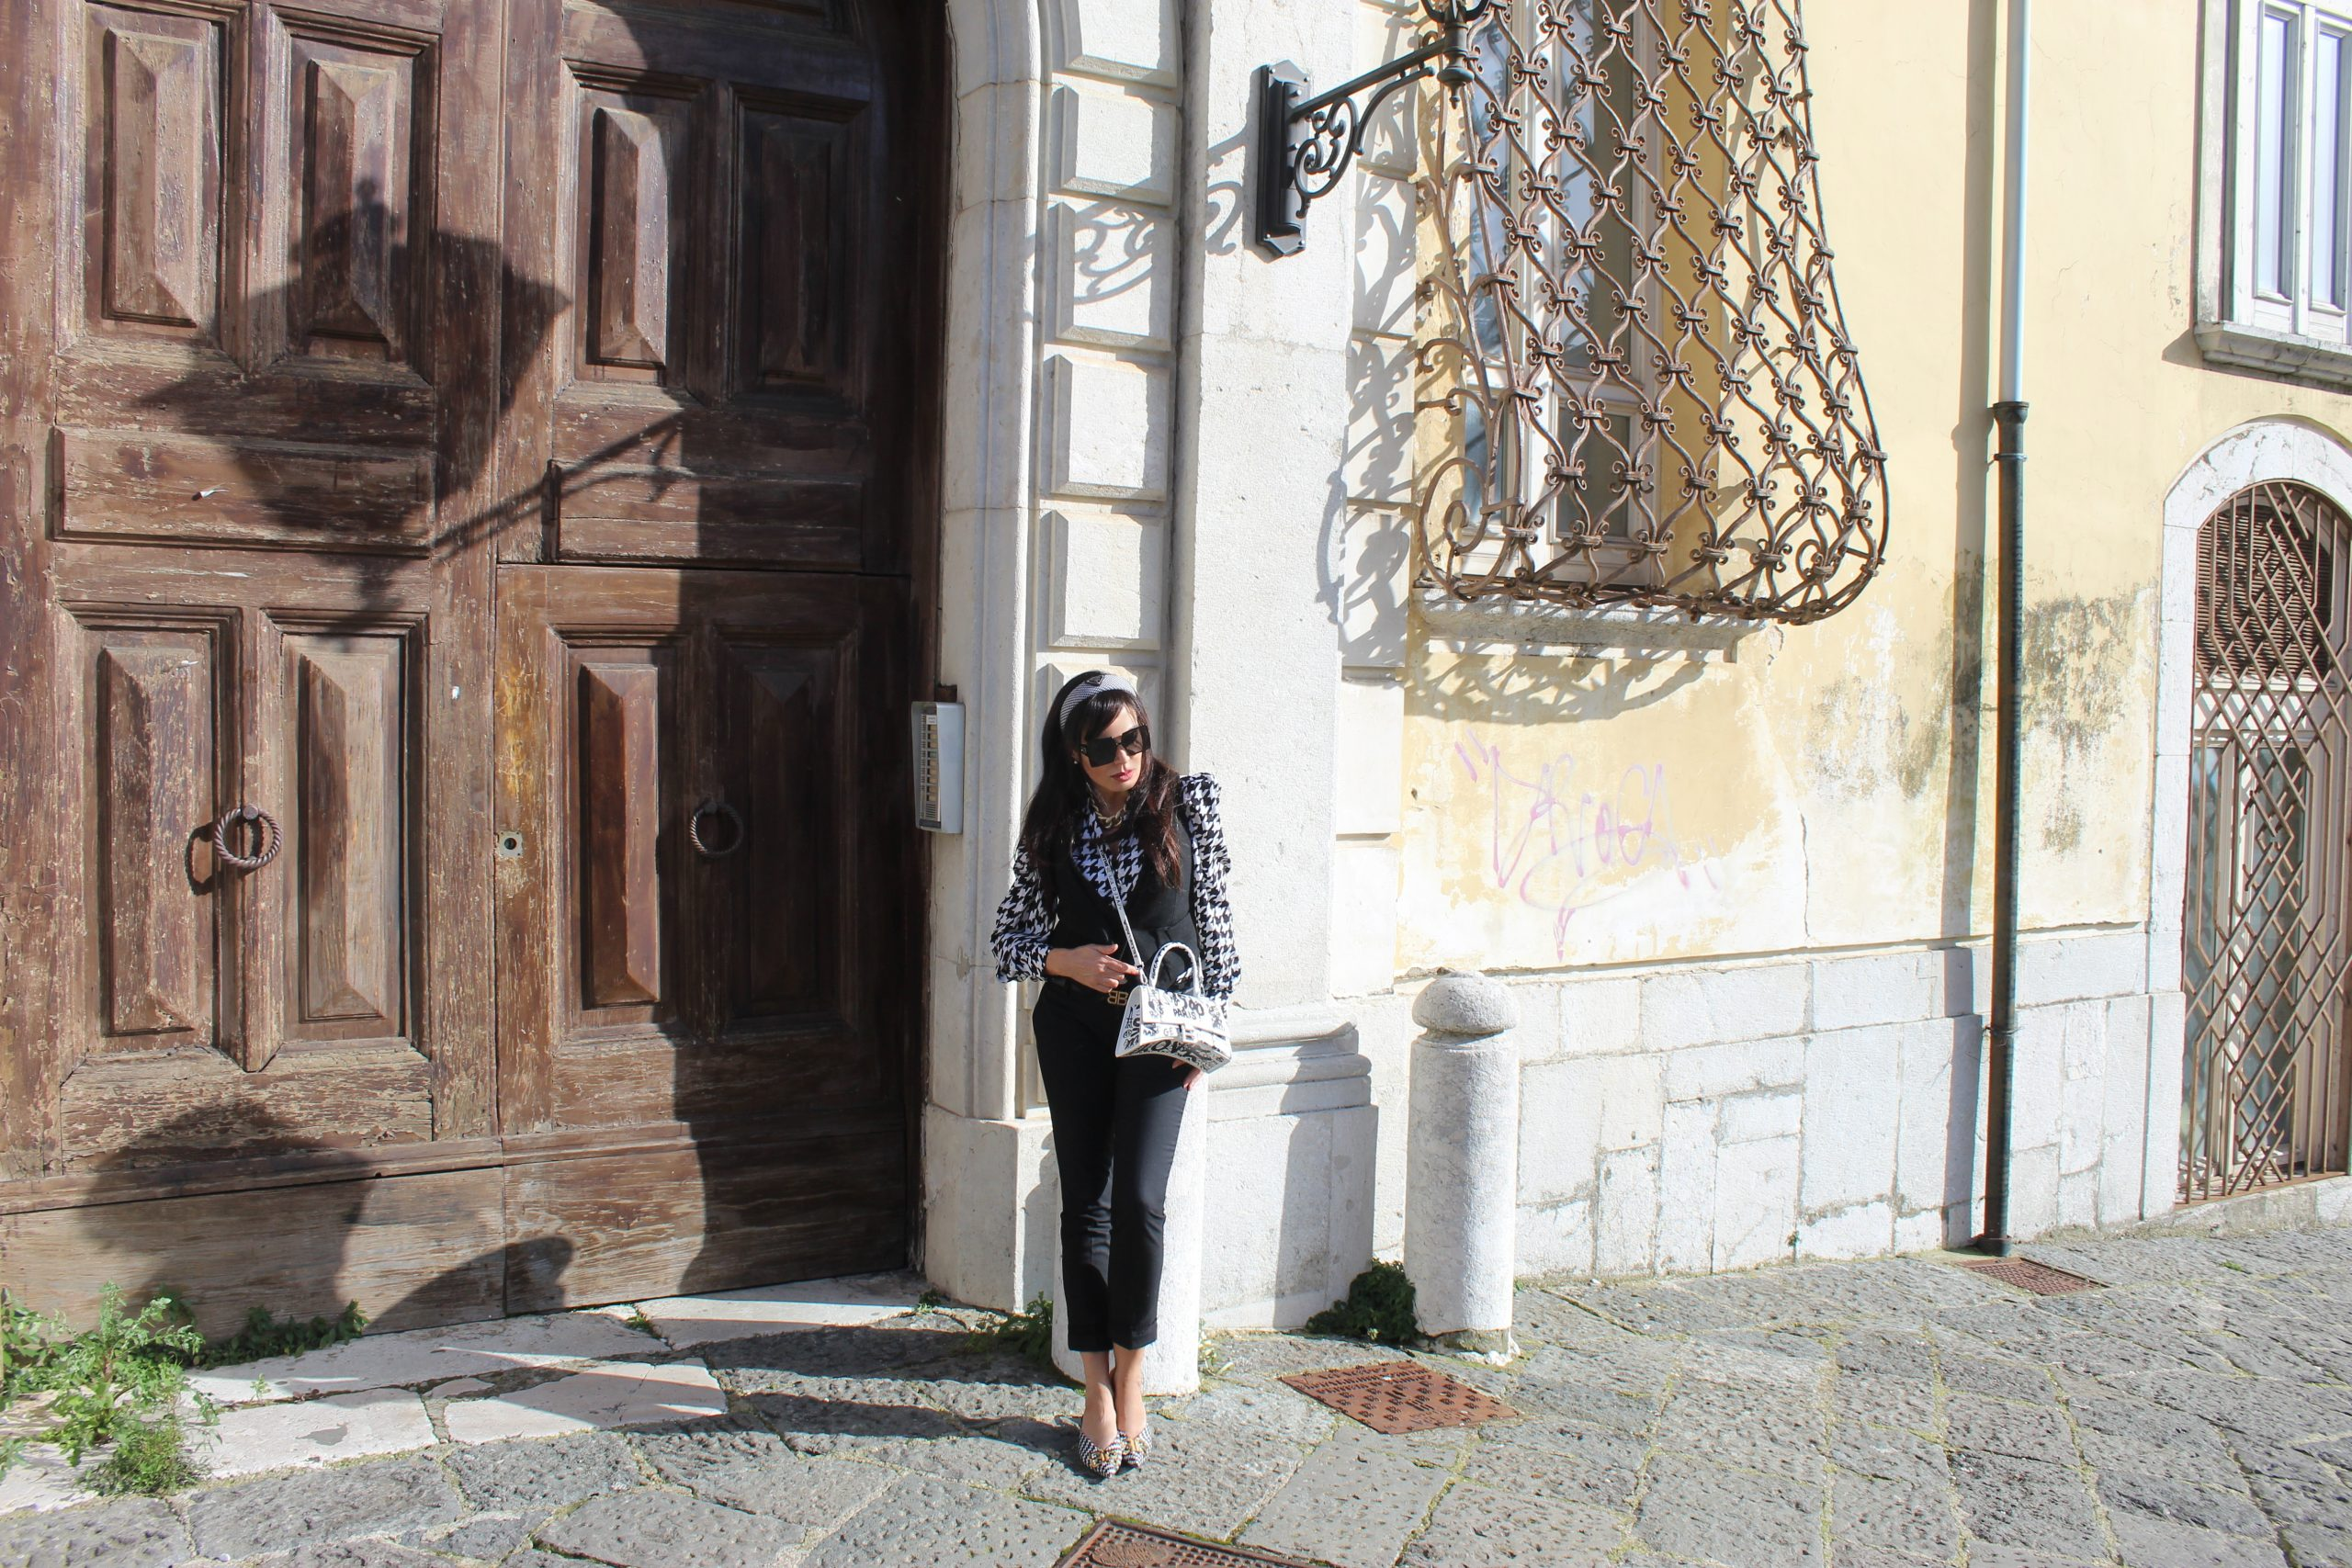 animalier fabric prints black and white outfit Prada accessories